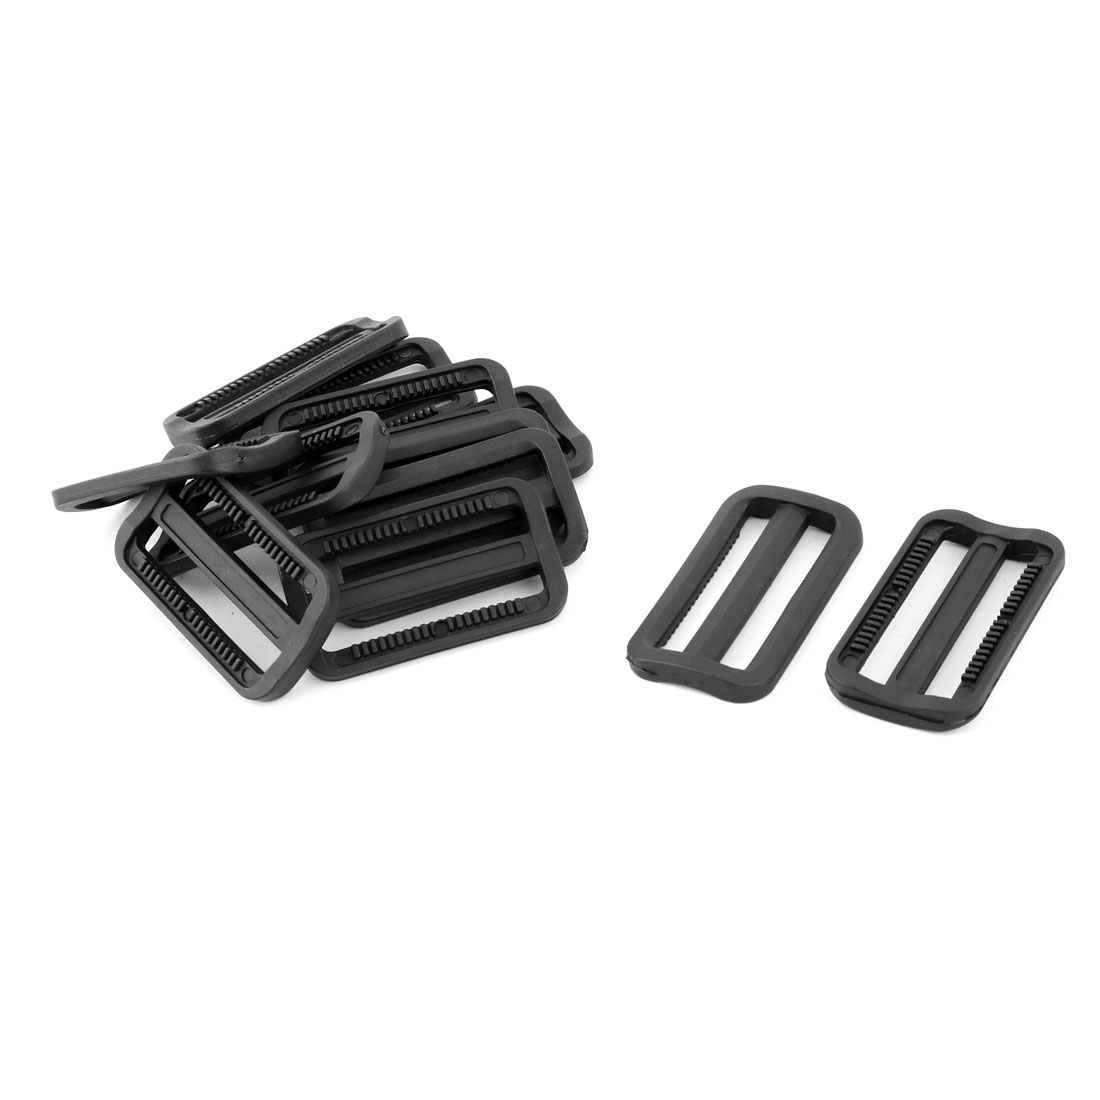 Outdoor Plastic Adjustable Backpack Strap Tri Glide Buckle Black 2.4 Inches Length 12pcs